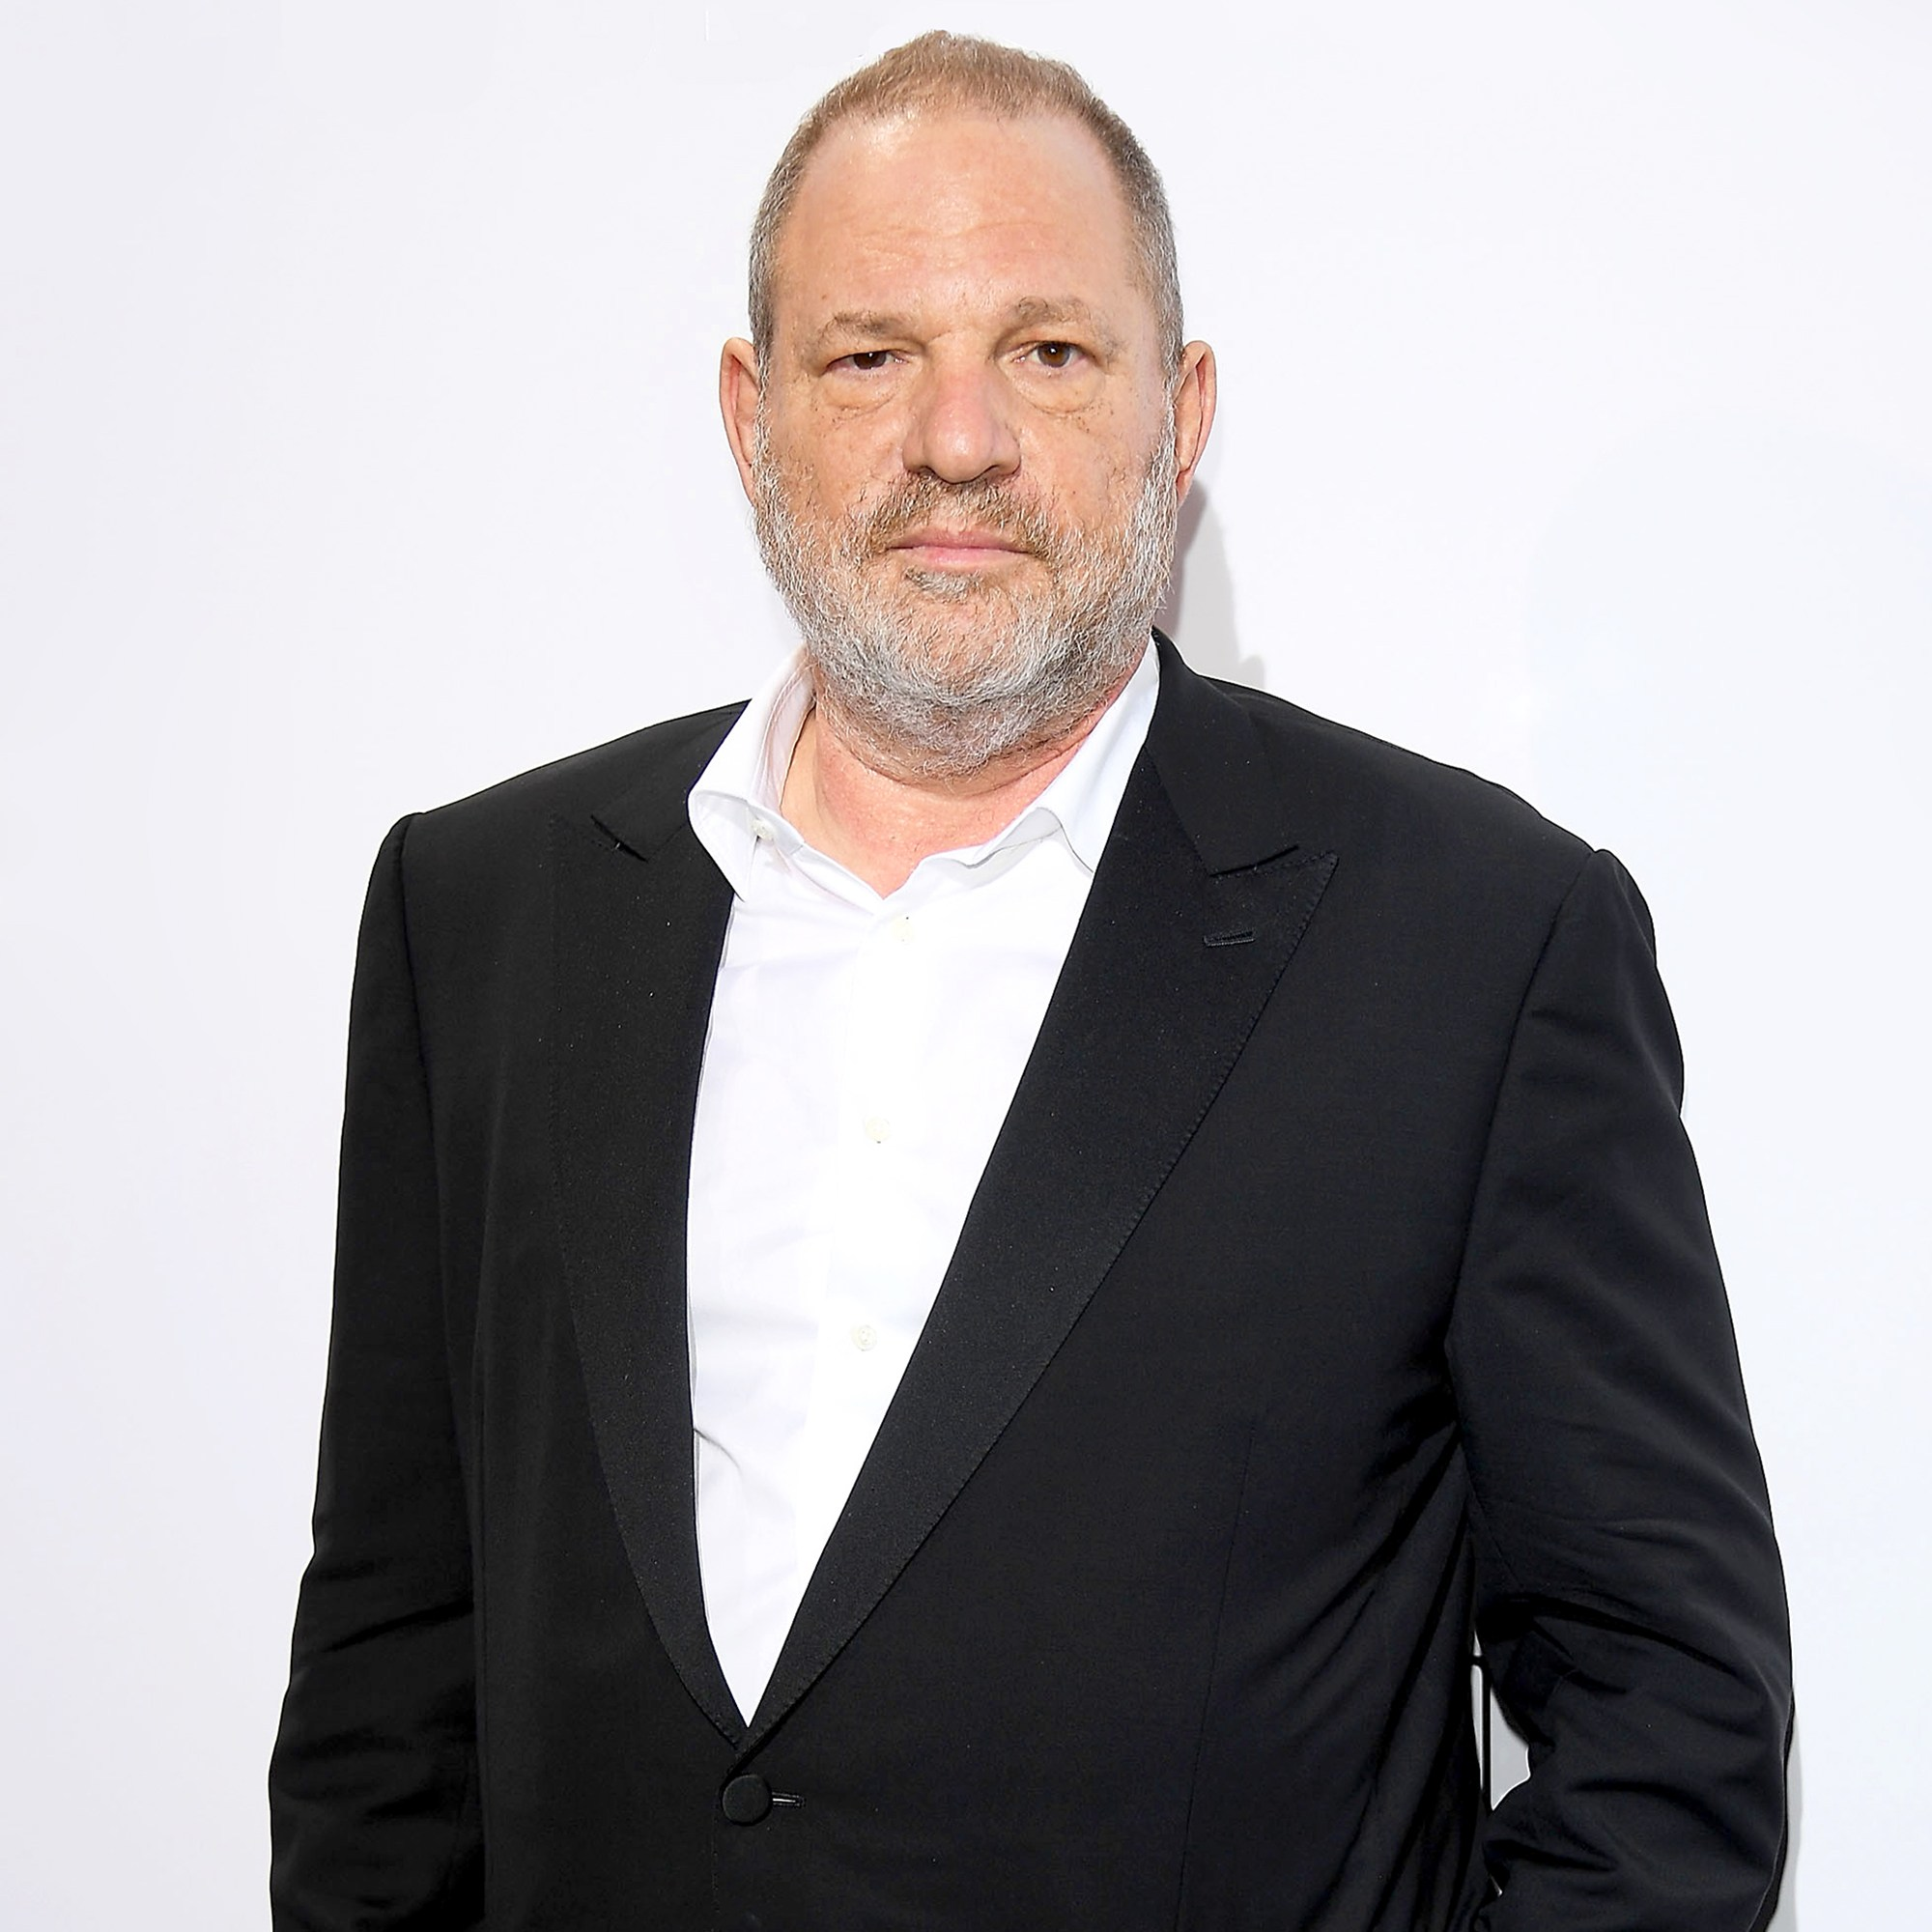 Harvey Weinstein during the 70th annual Cannes Film Festival at Hotel du Cap-Eden-Roc on May 23, 2017 in Cap d'Antibes, France.